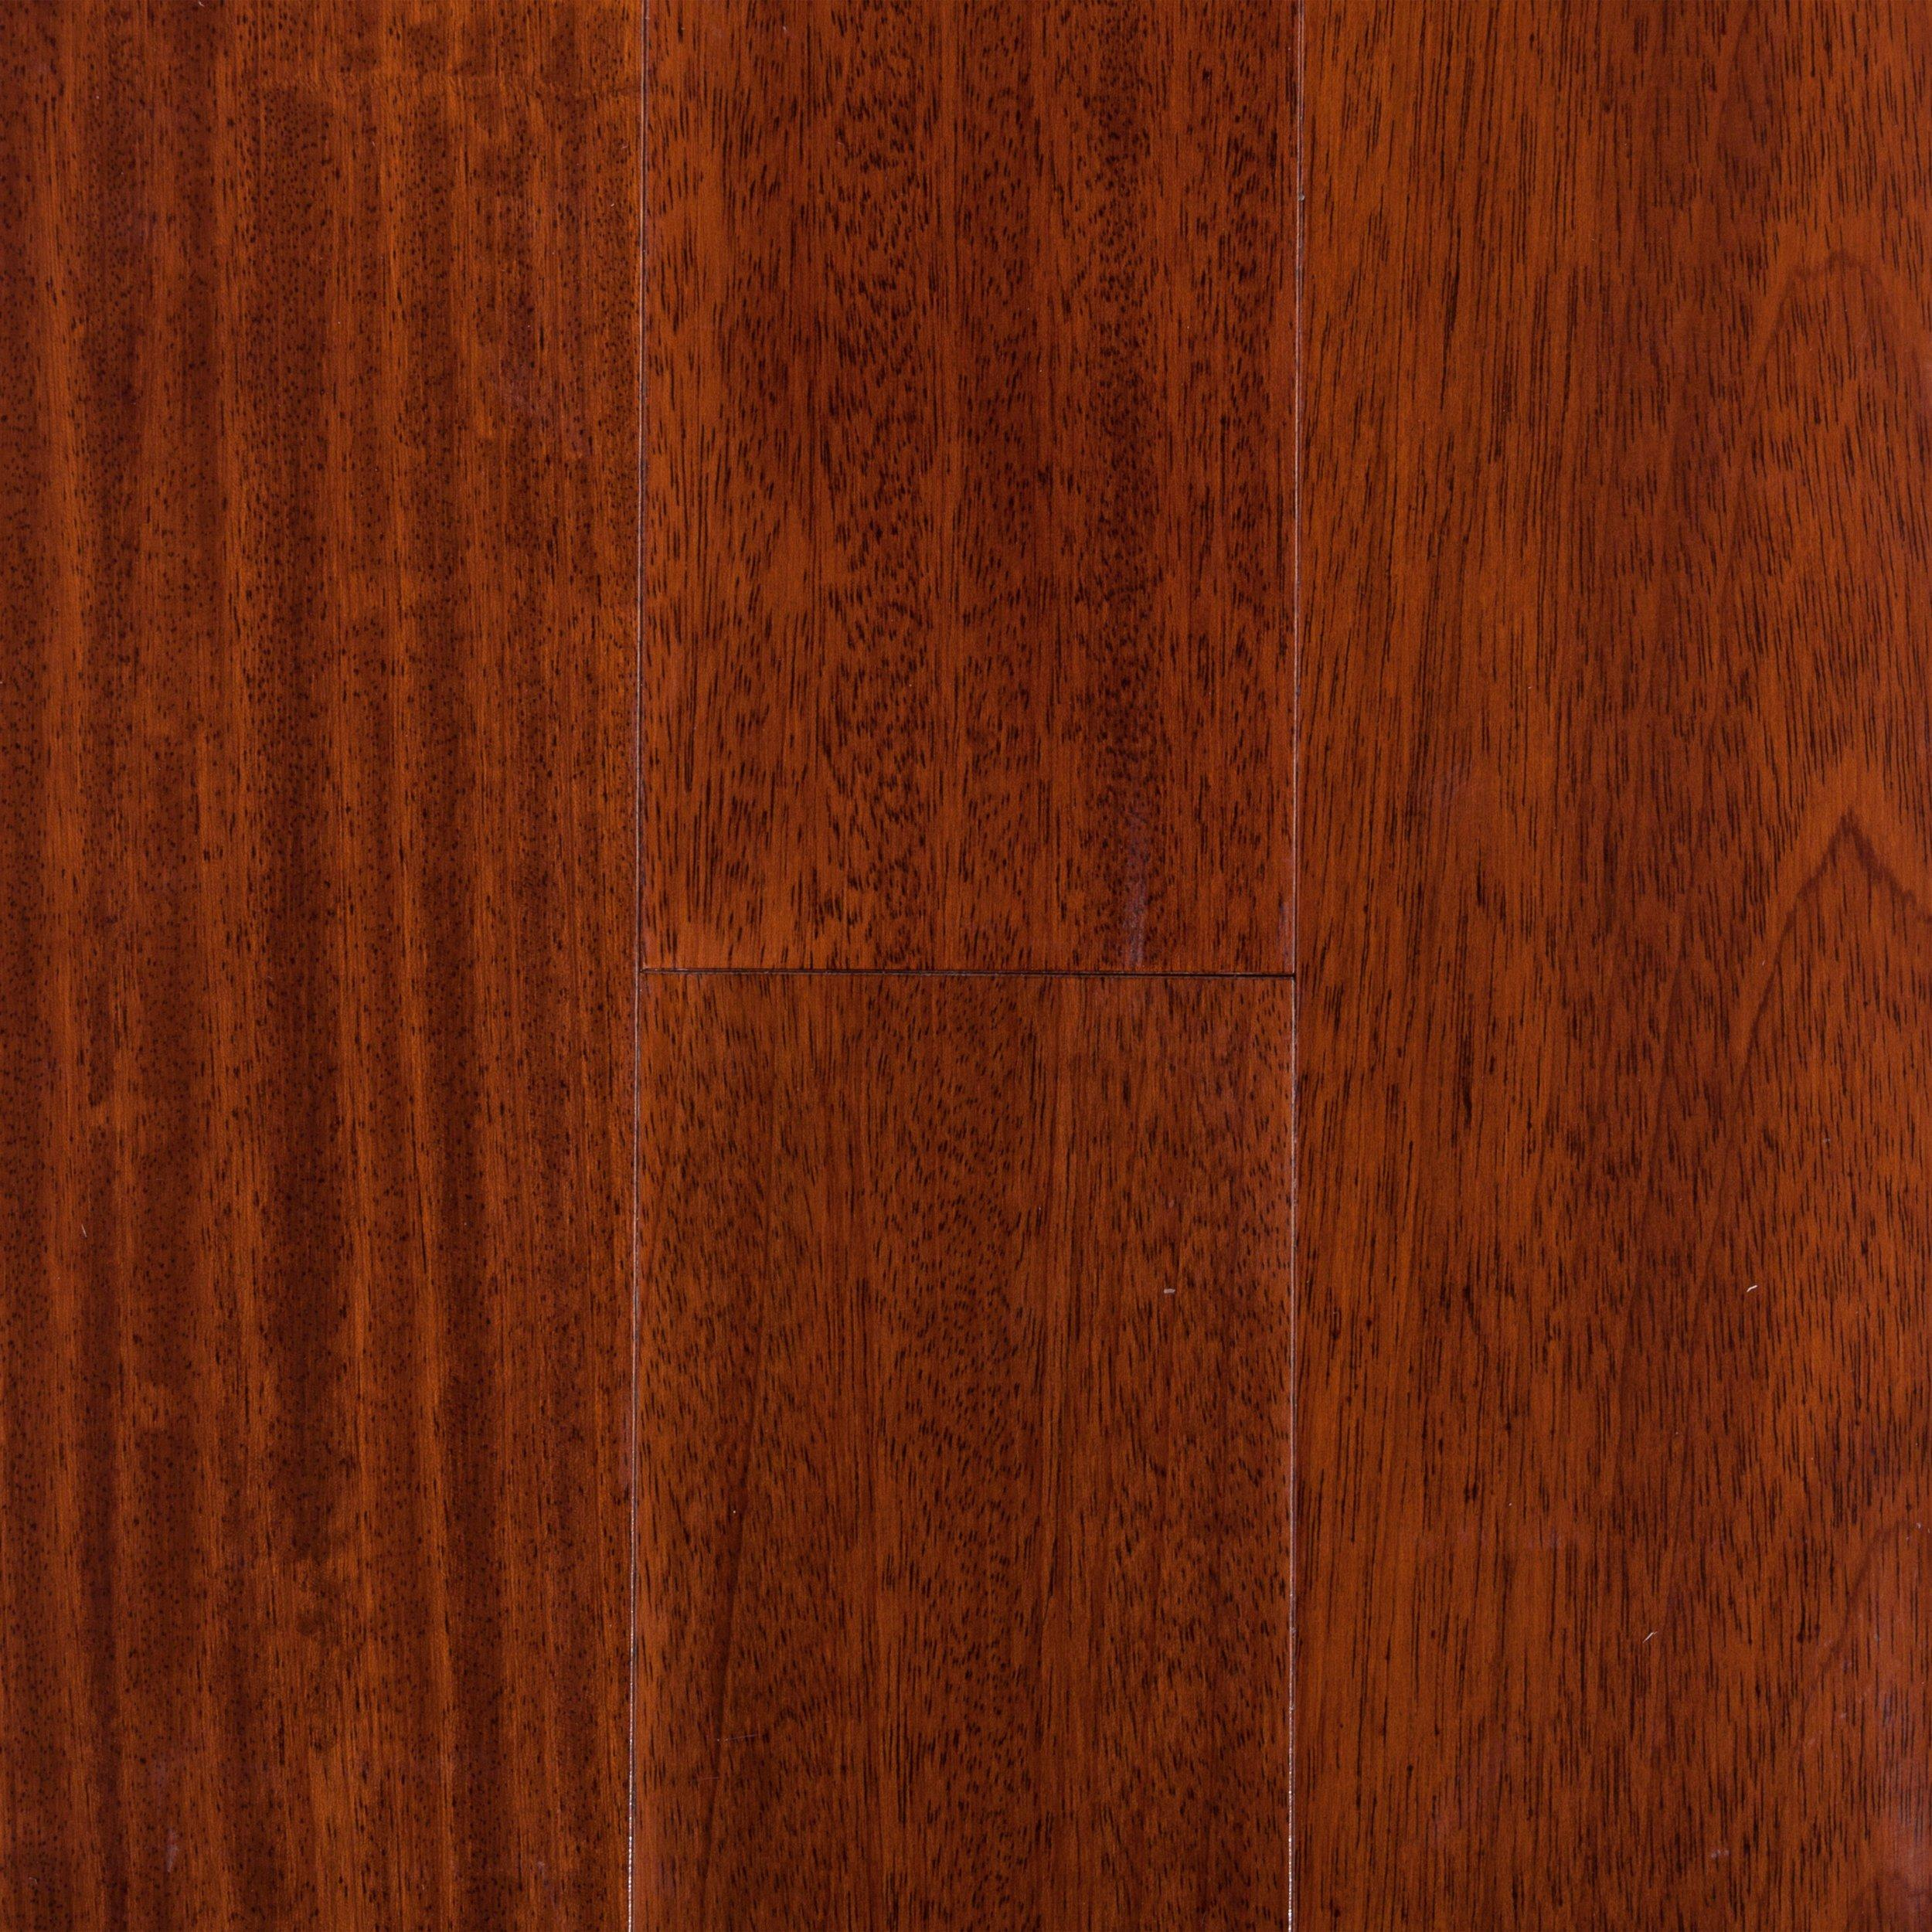 cherry hardwood floor. Natural Brazilian Cherry Smooth Engineered Hardwood Floor